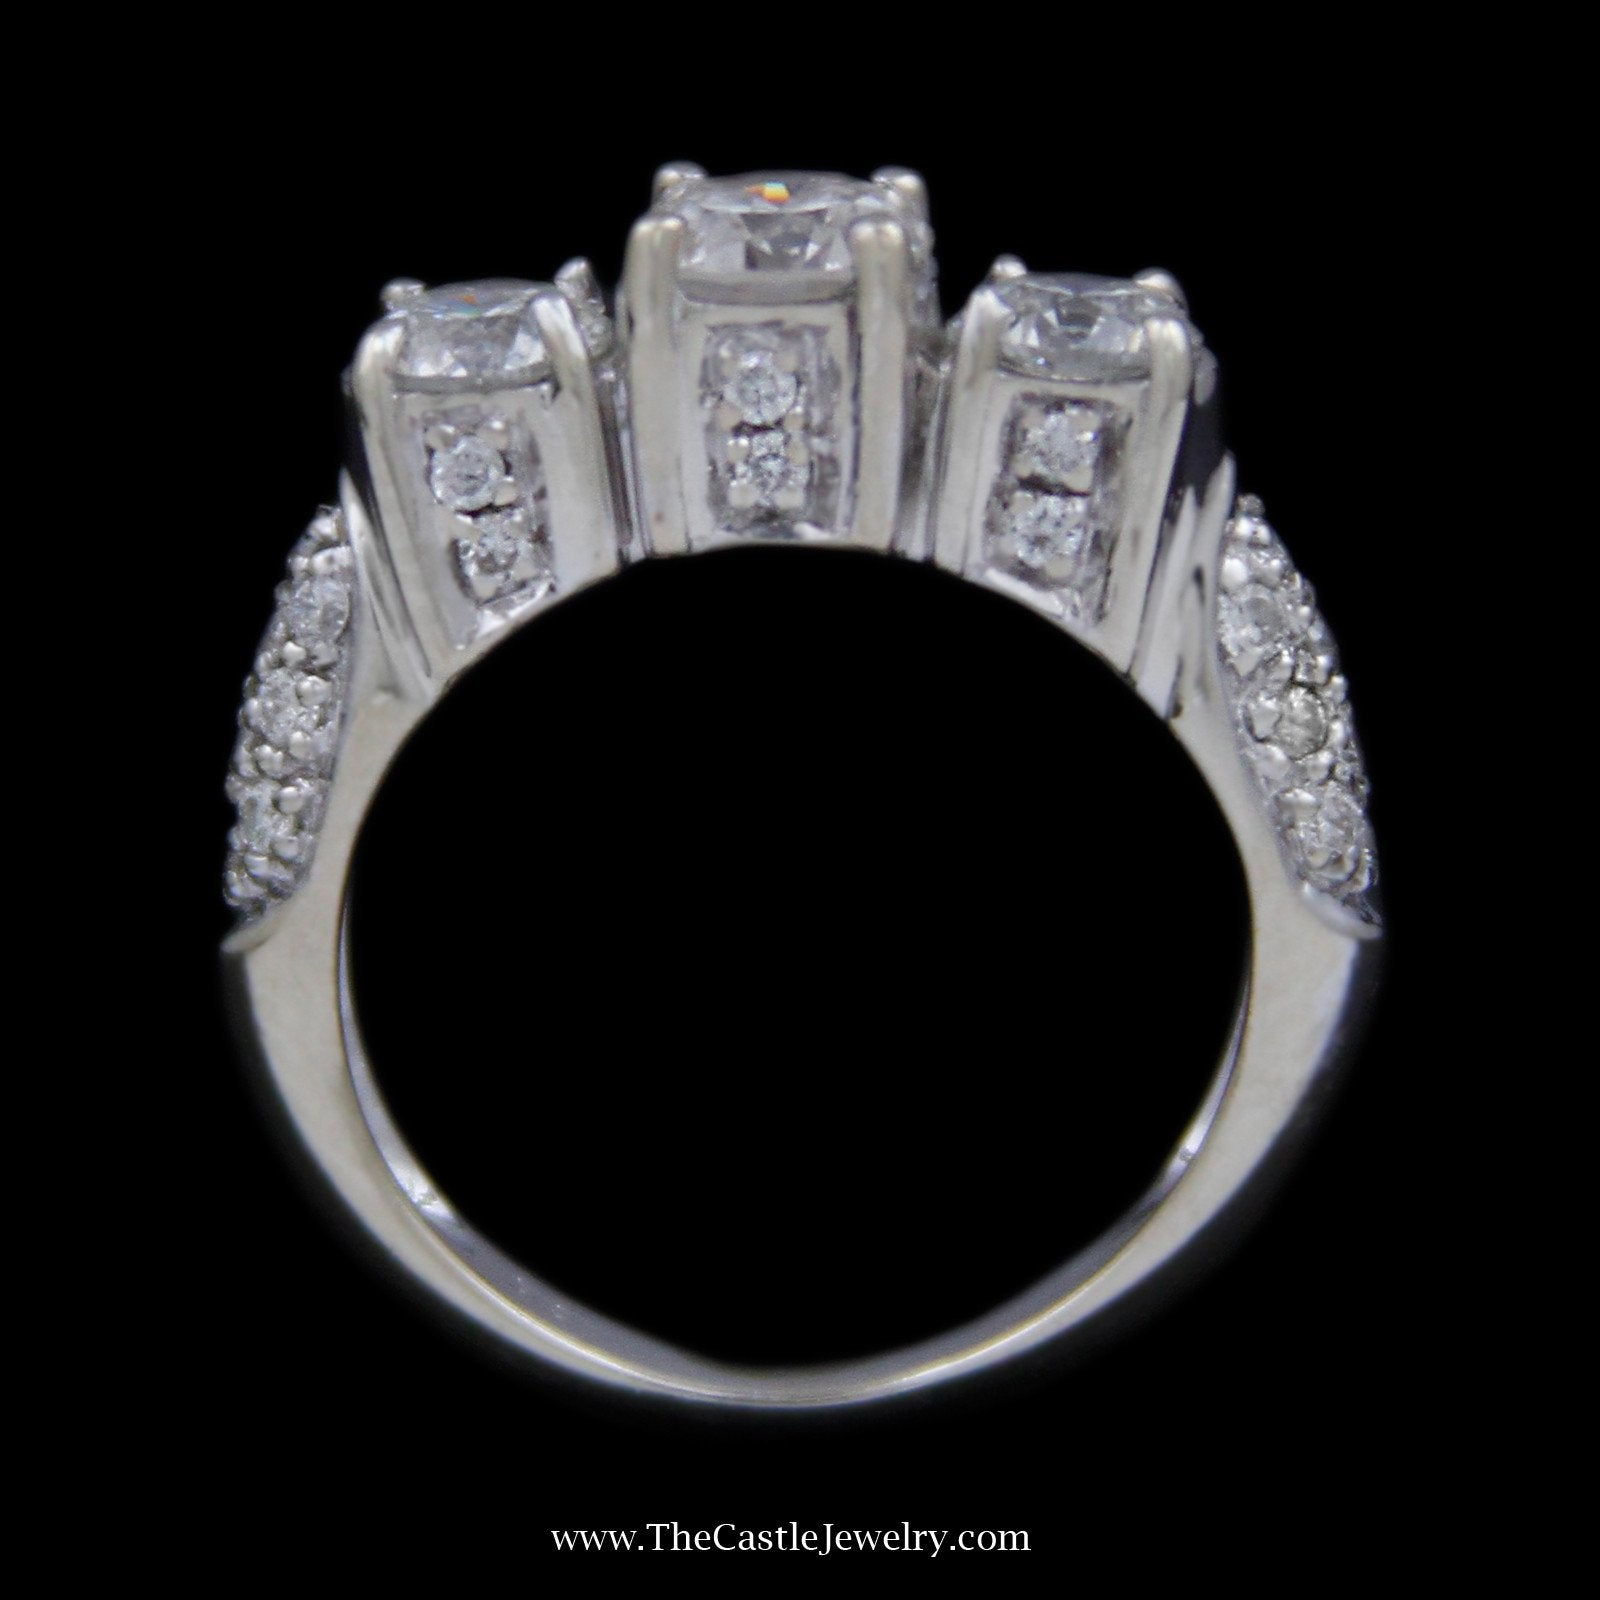 DeBeers Style Ring 3 Round Diamond Ring in Pave Set Round Diamond Mounting in 18k White Gold-1